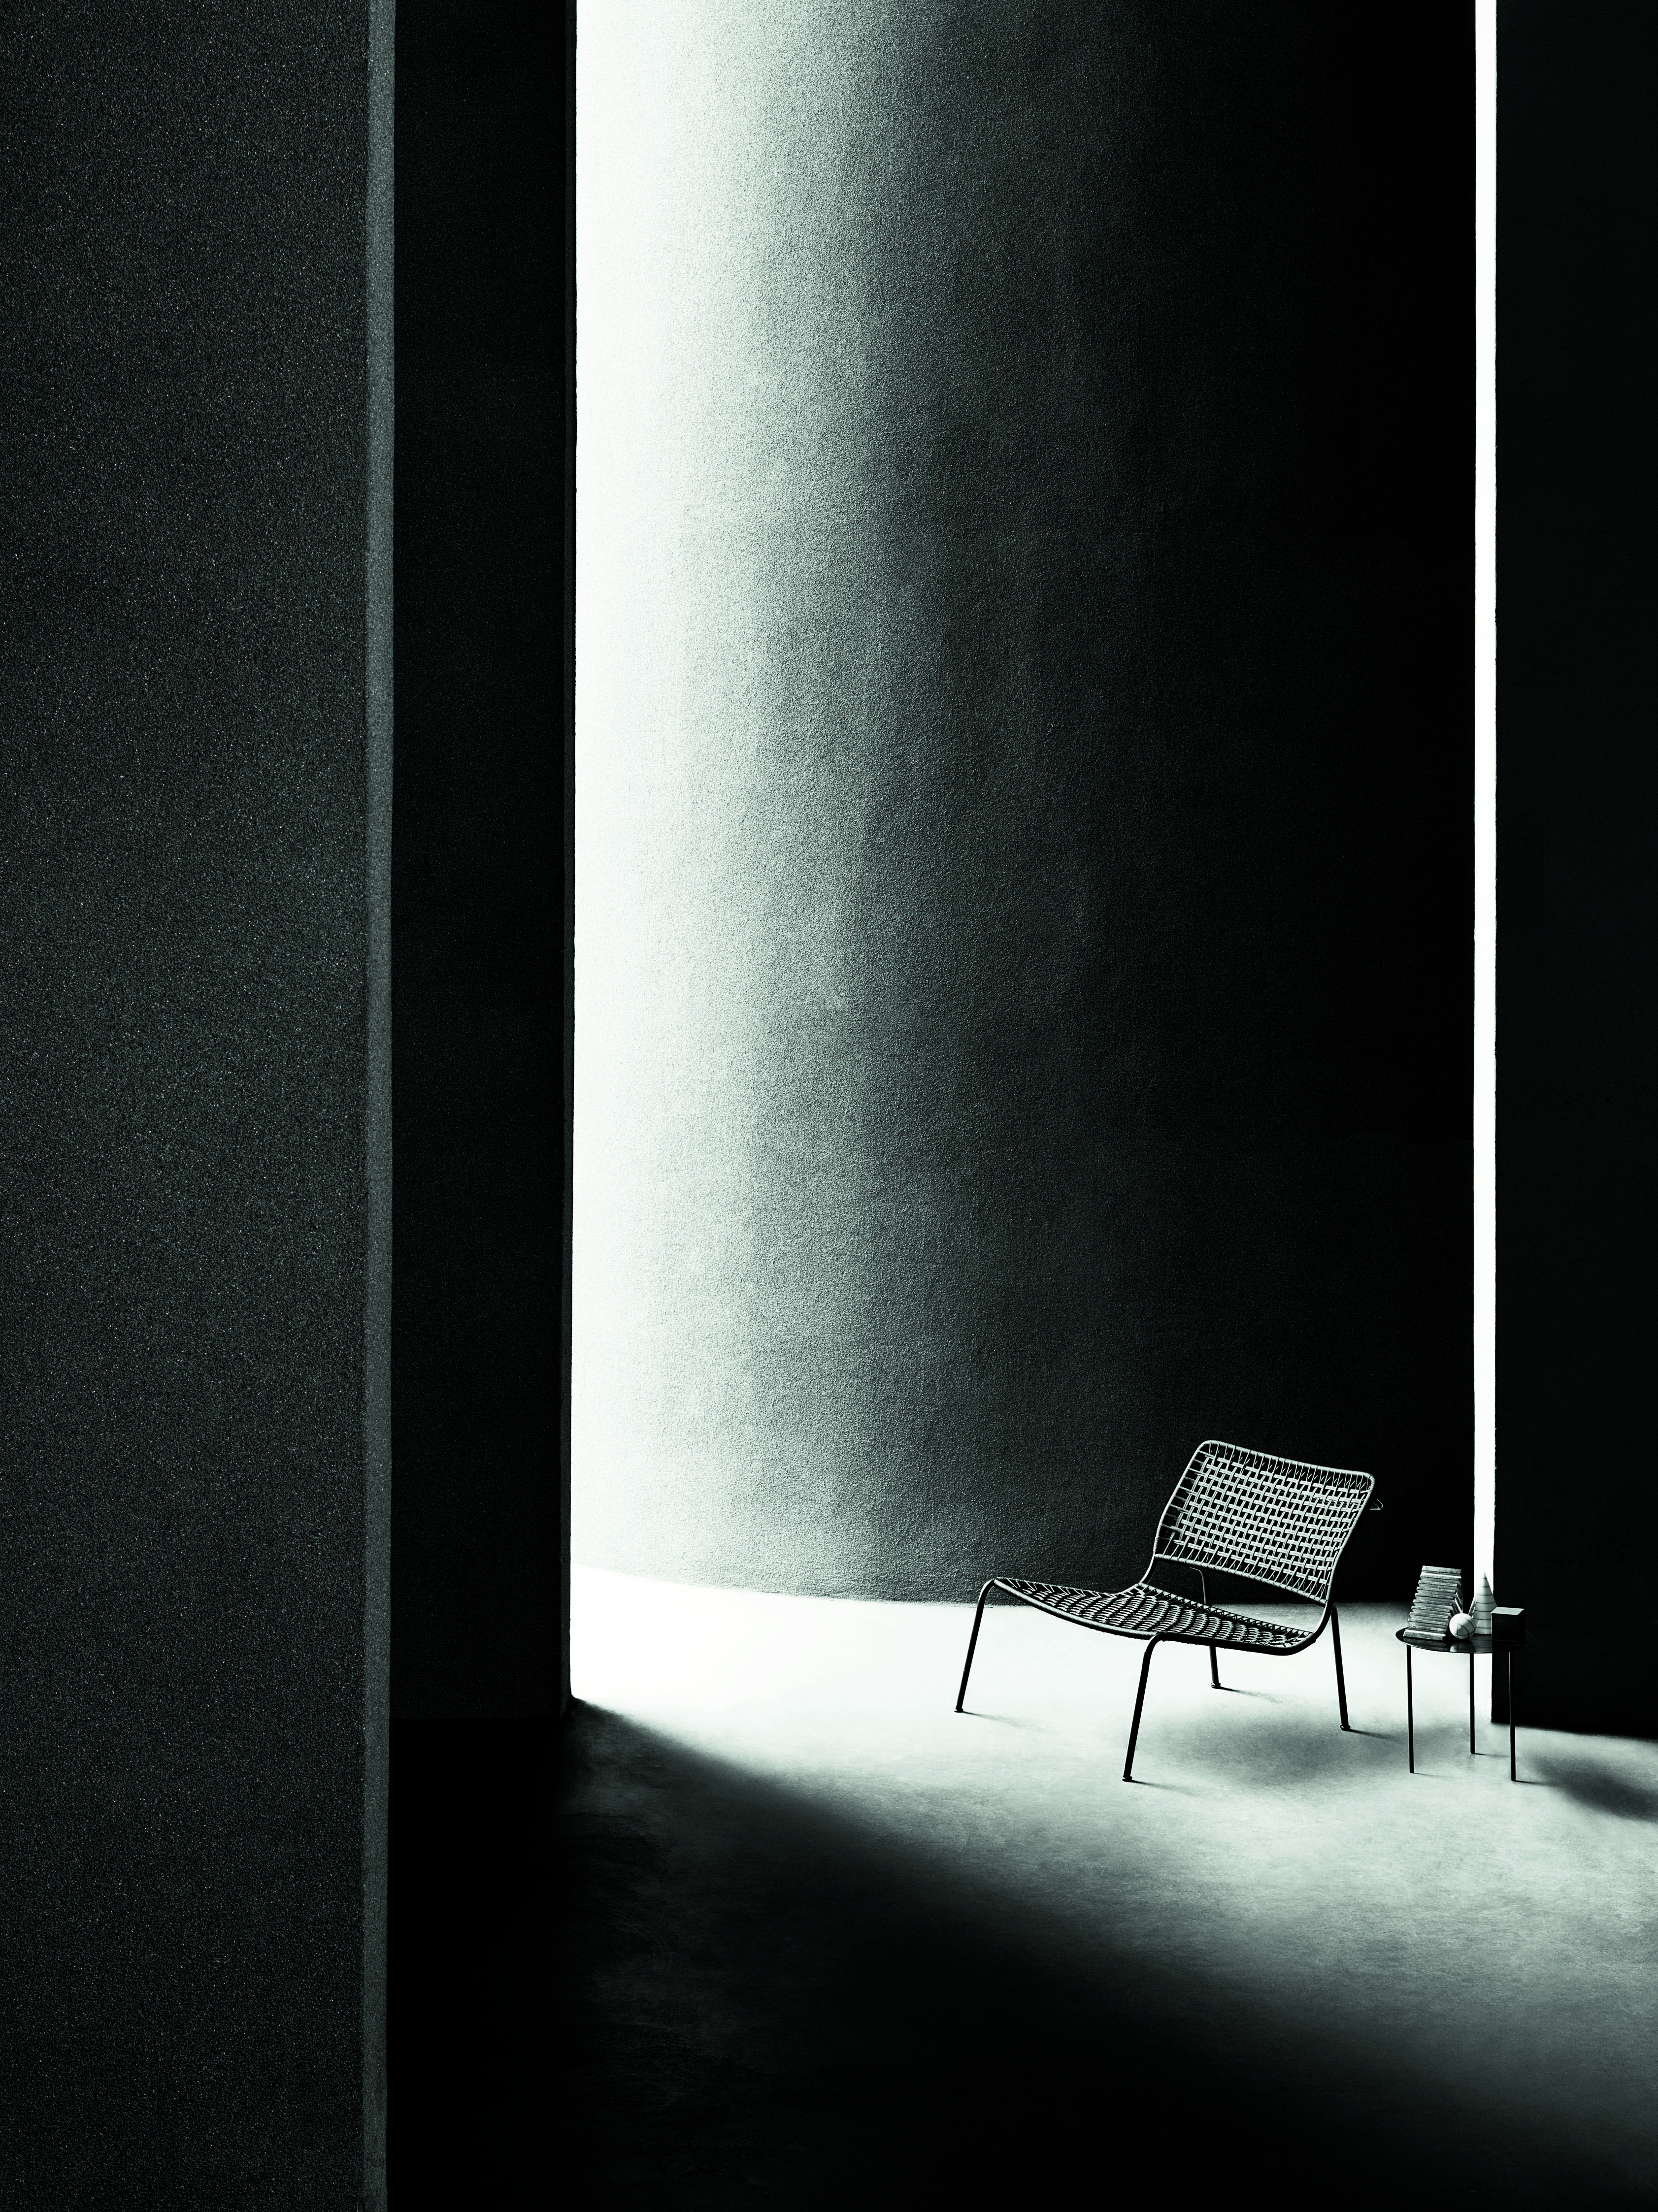 """Refreshed in a pure """"white&black"""" key... waiting for the 2017 press campaign! Carbon Frog design Piero Lissoni."""